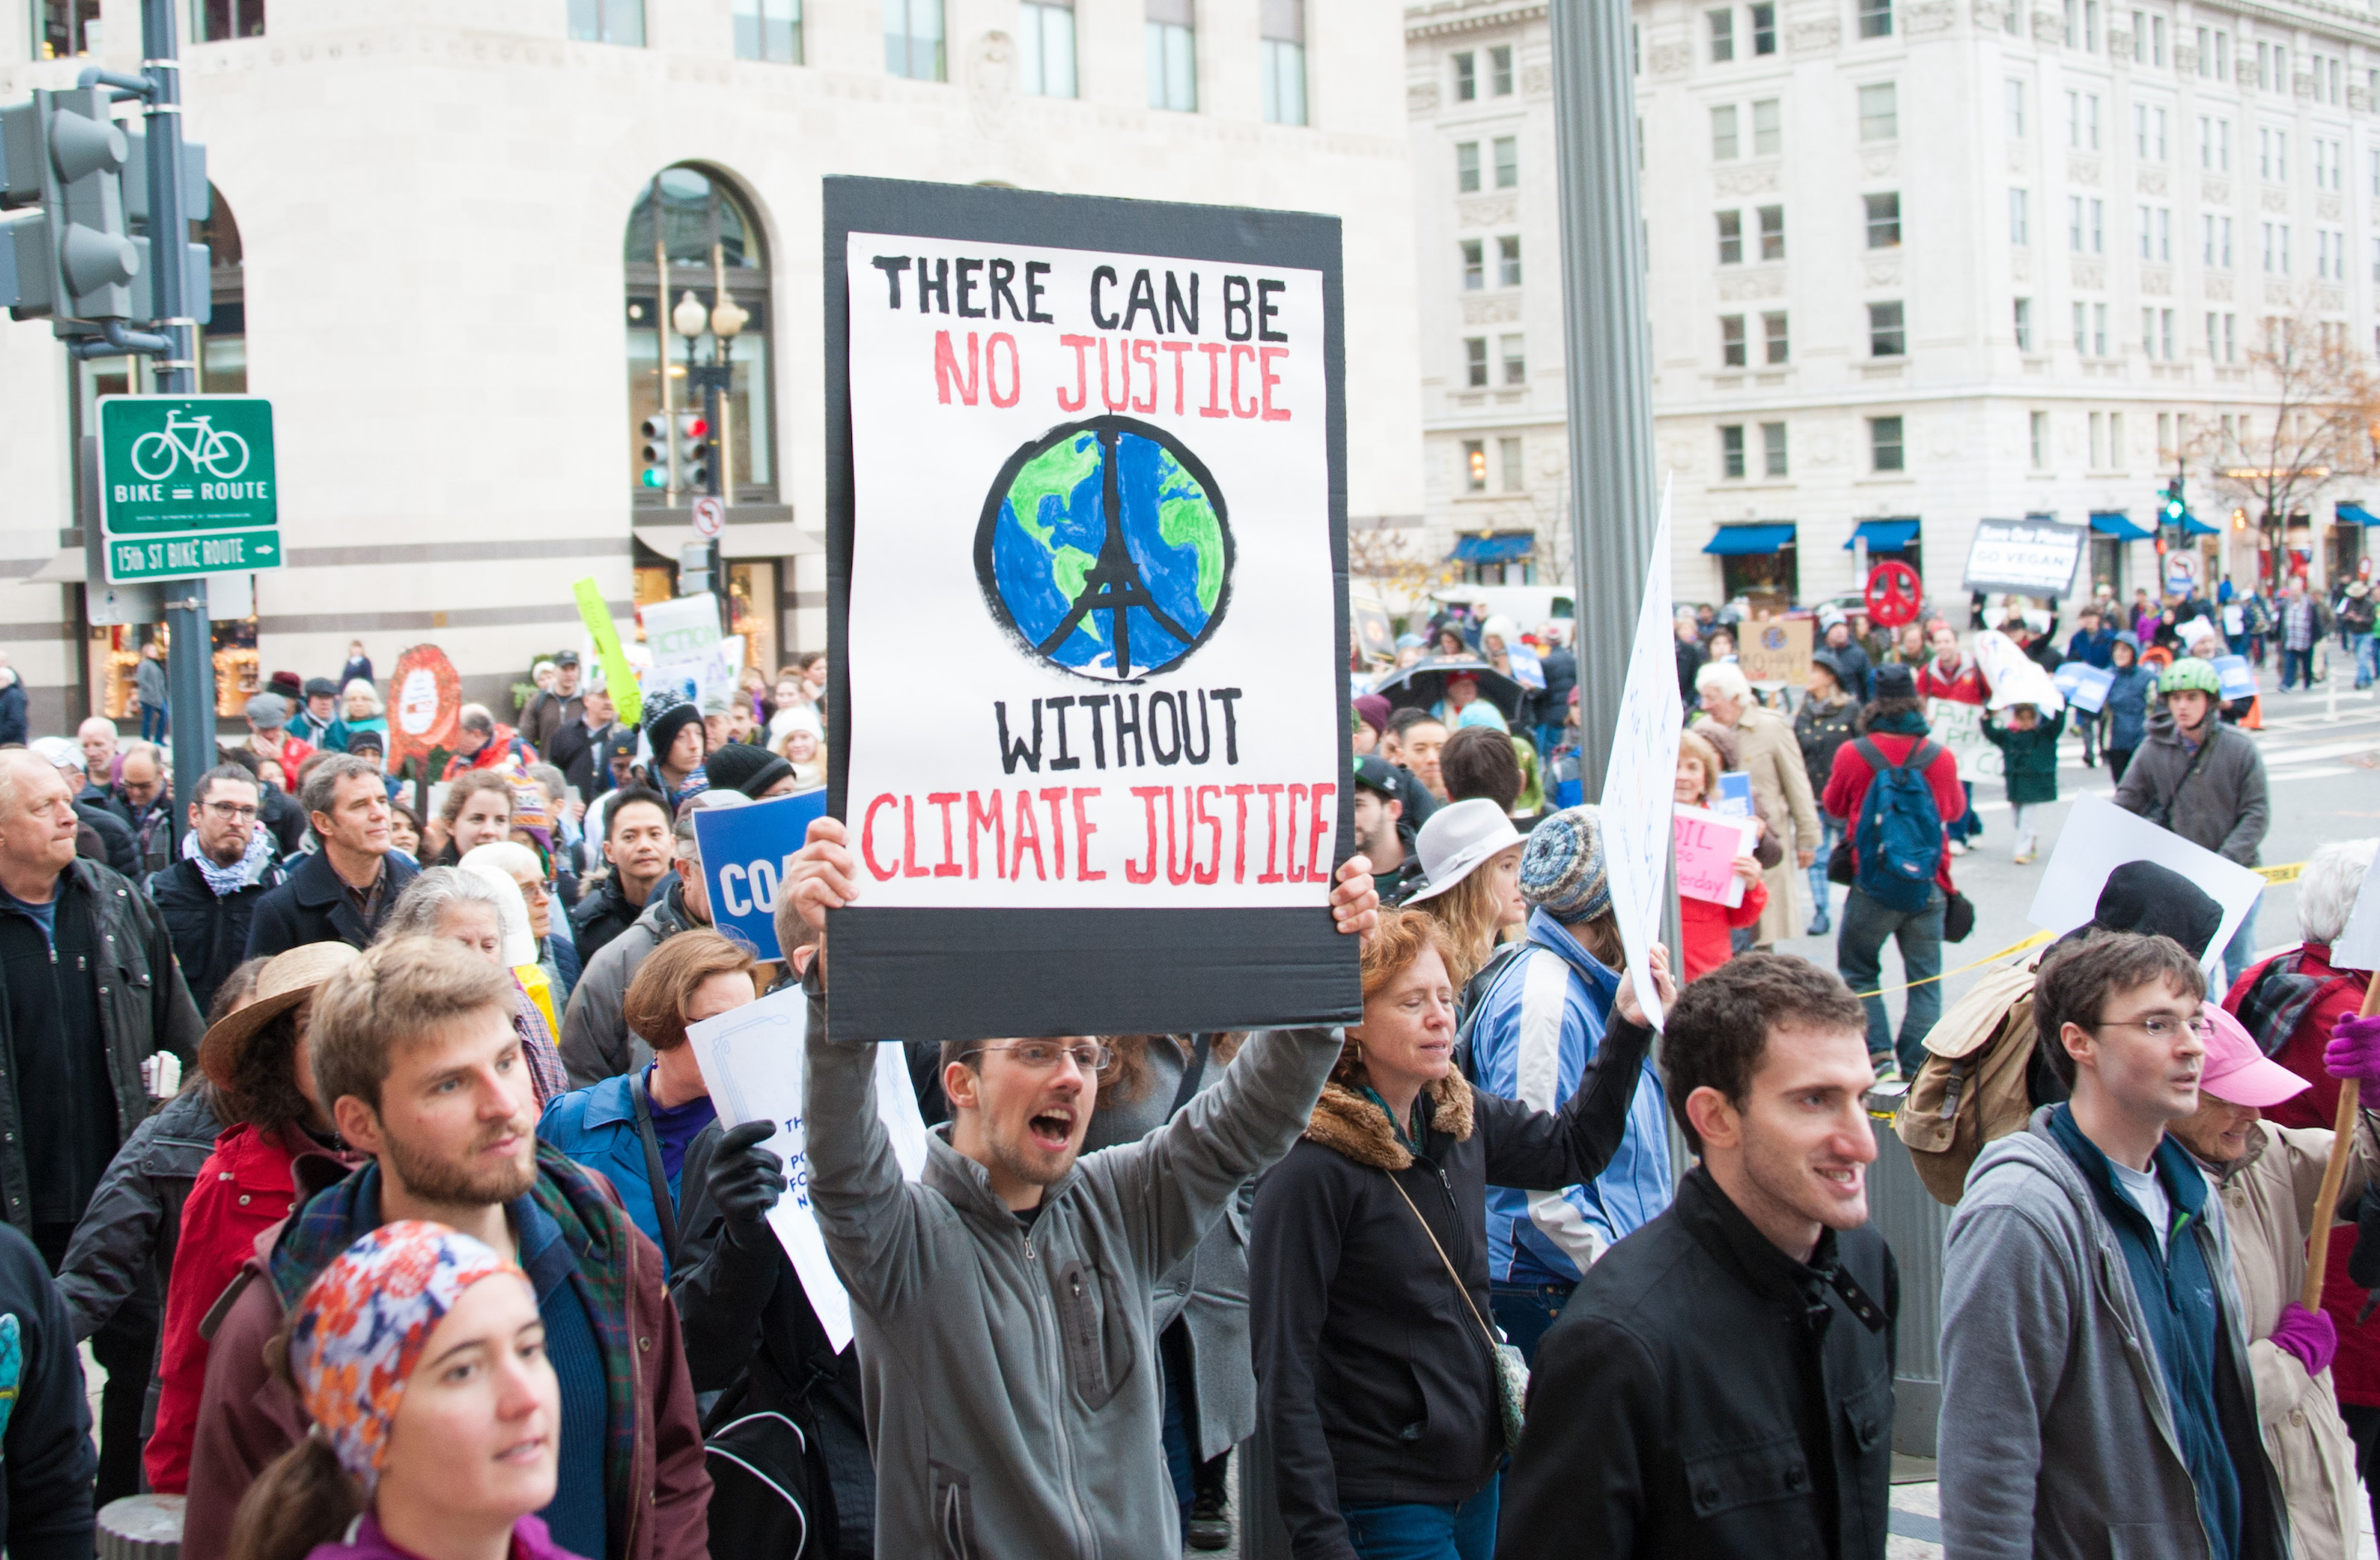 Citing public health problems is a strong motivator for bringing cases to court. In fact, a new study found that presenting public health risks could help shape the way people view climate change.